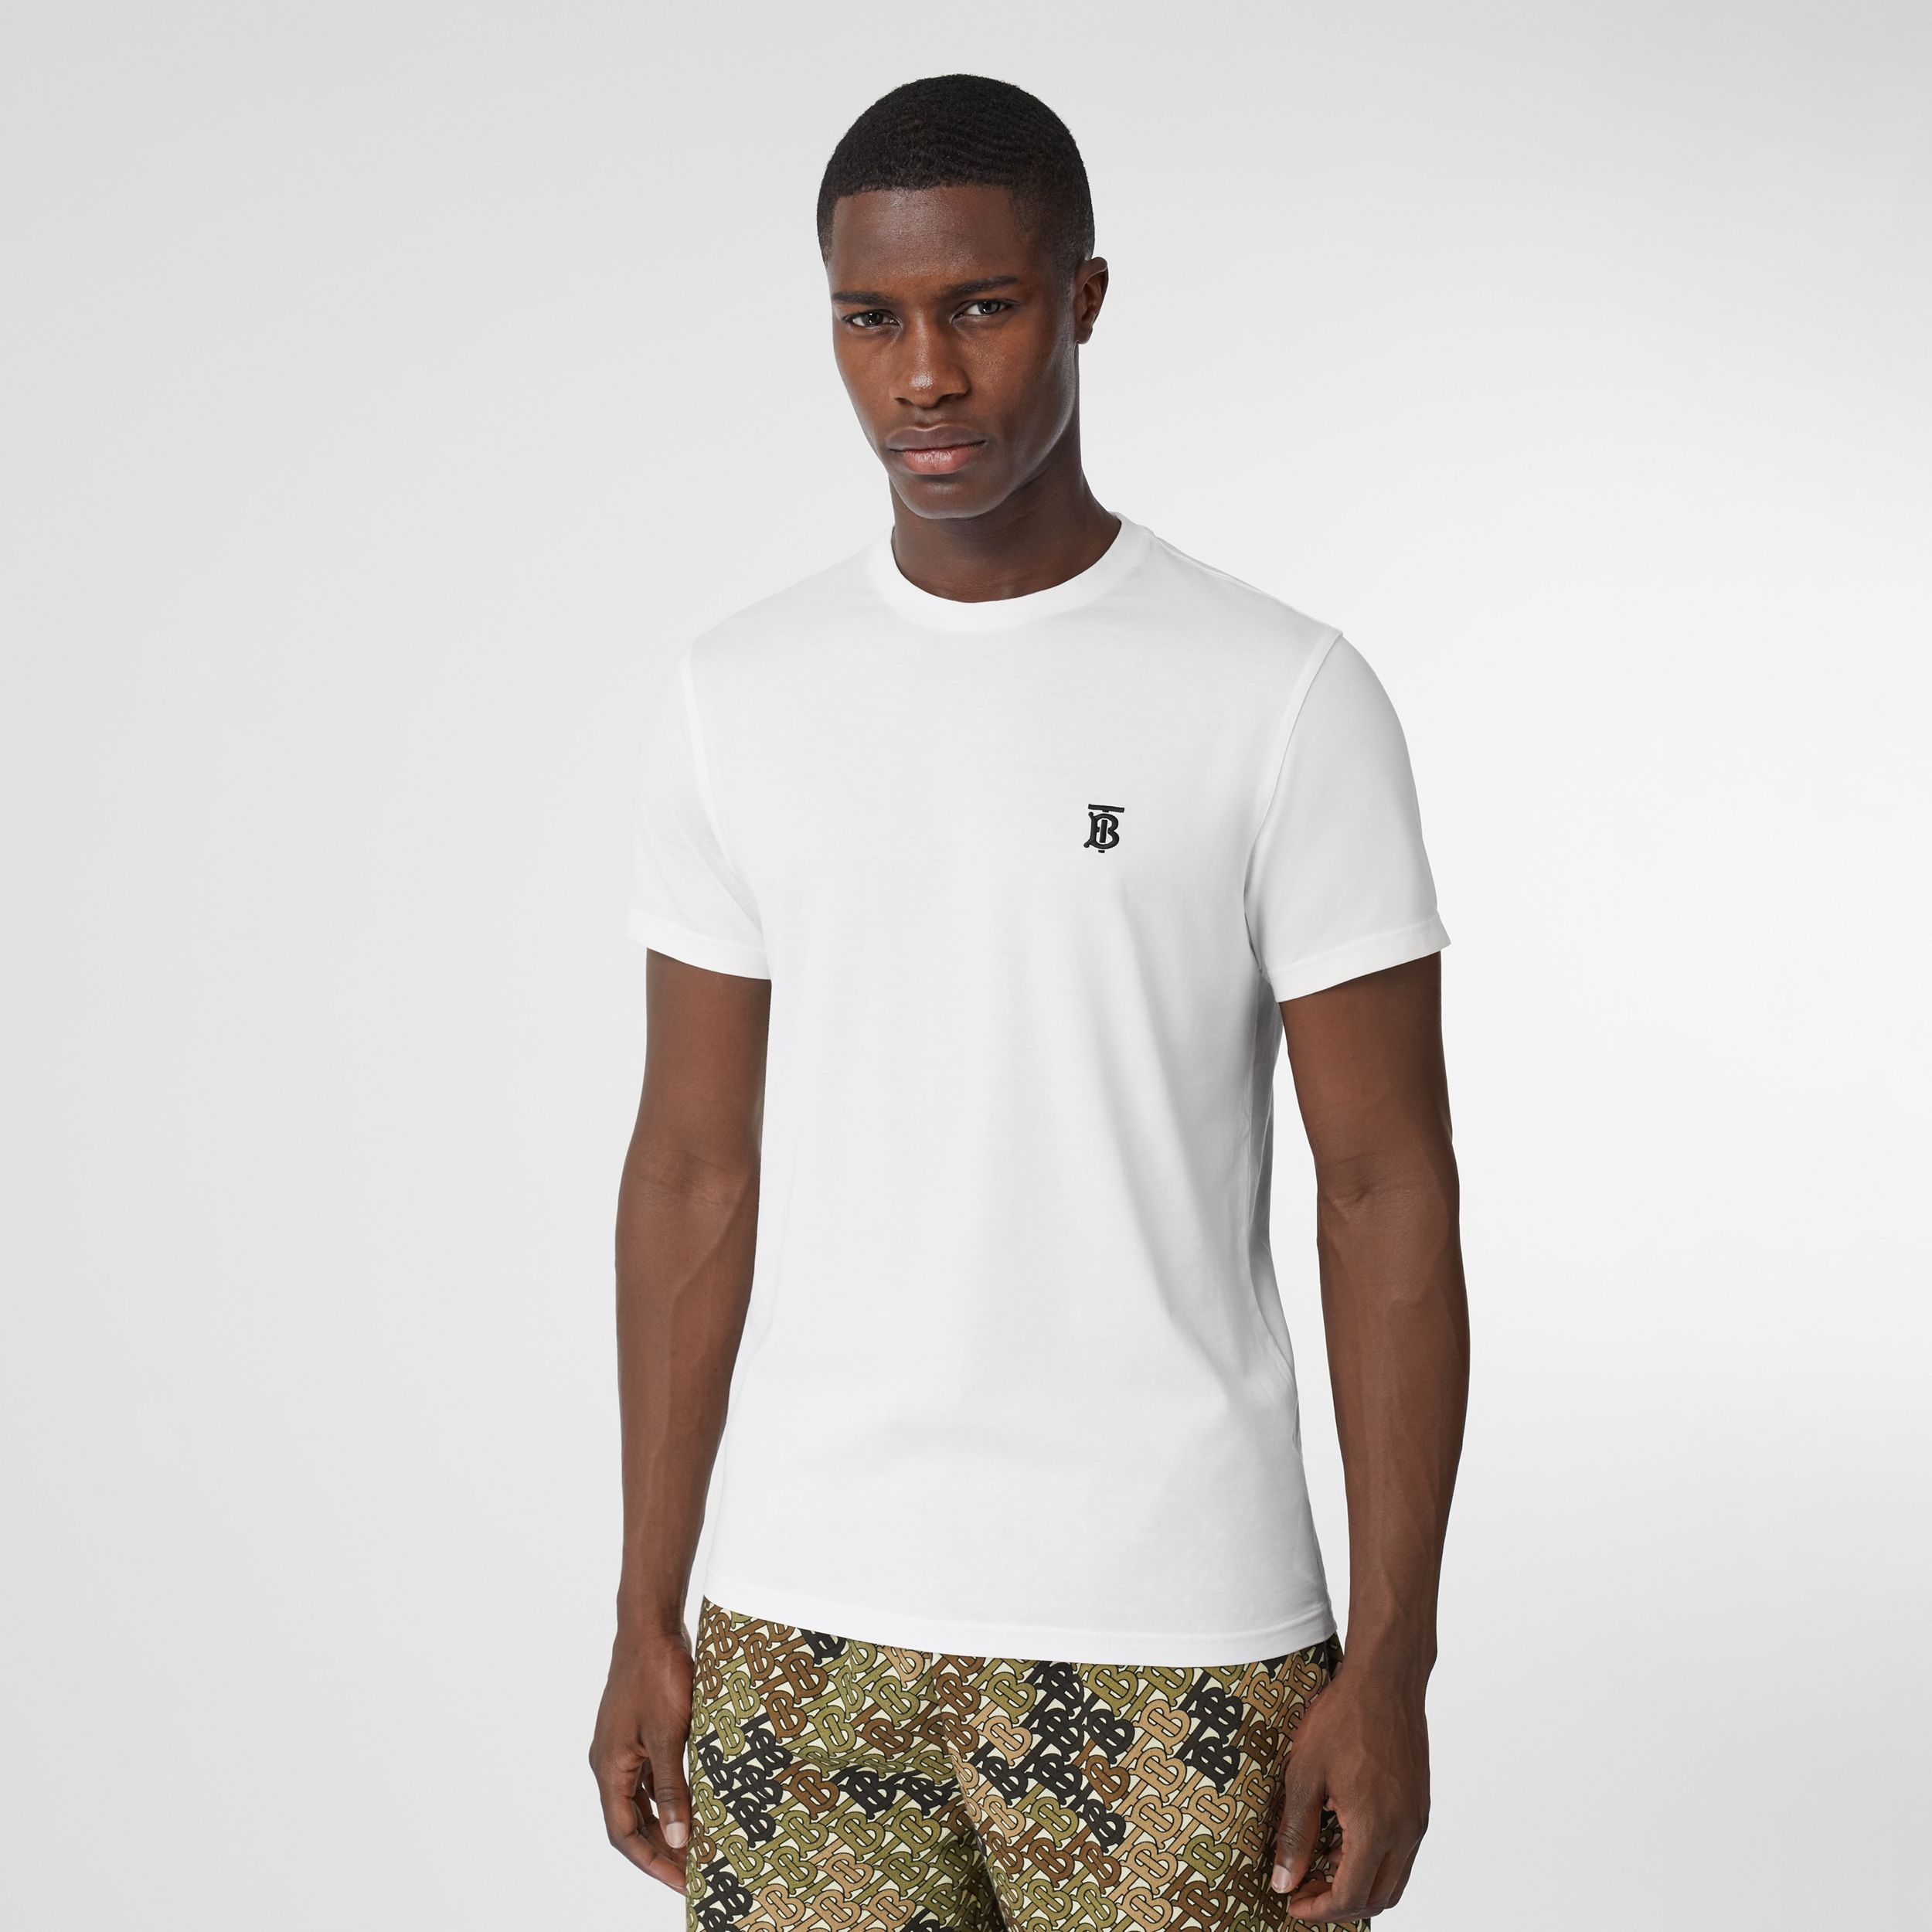 Monogram Motif Cotton T-shirt in White - Men | Burberry Canada - 1